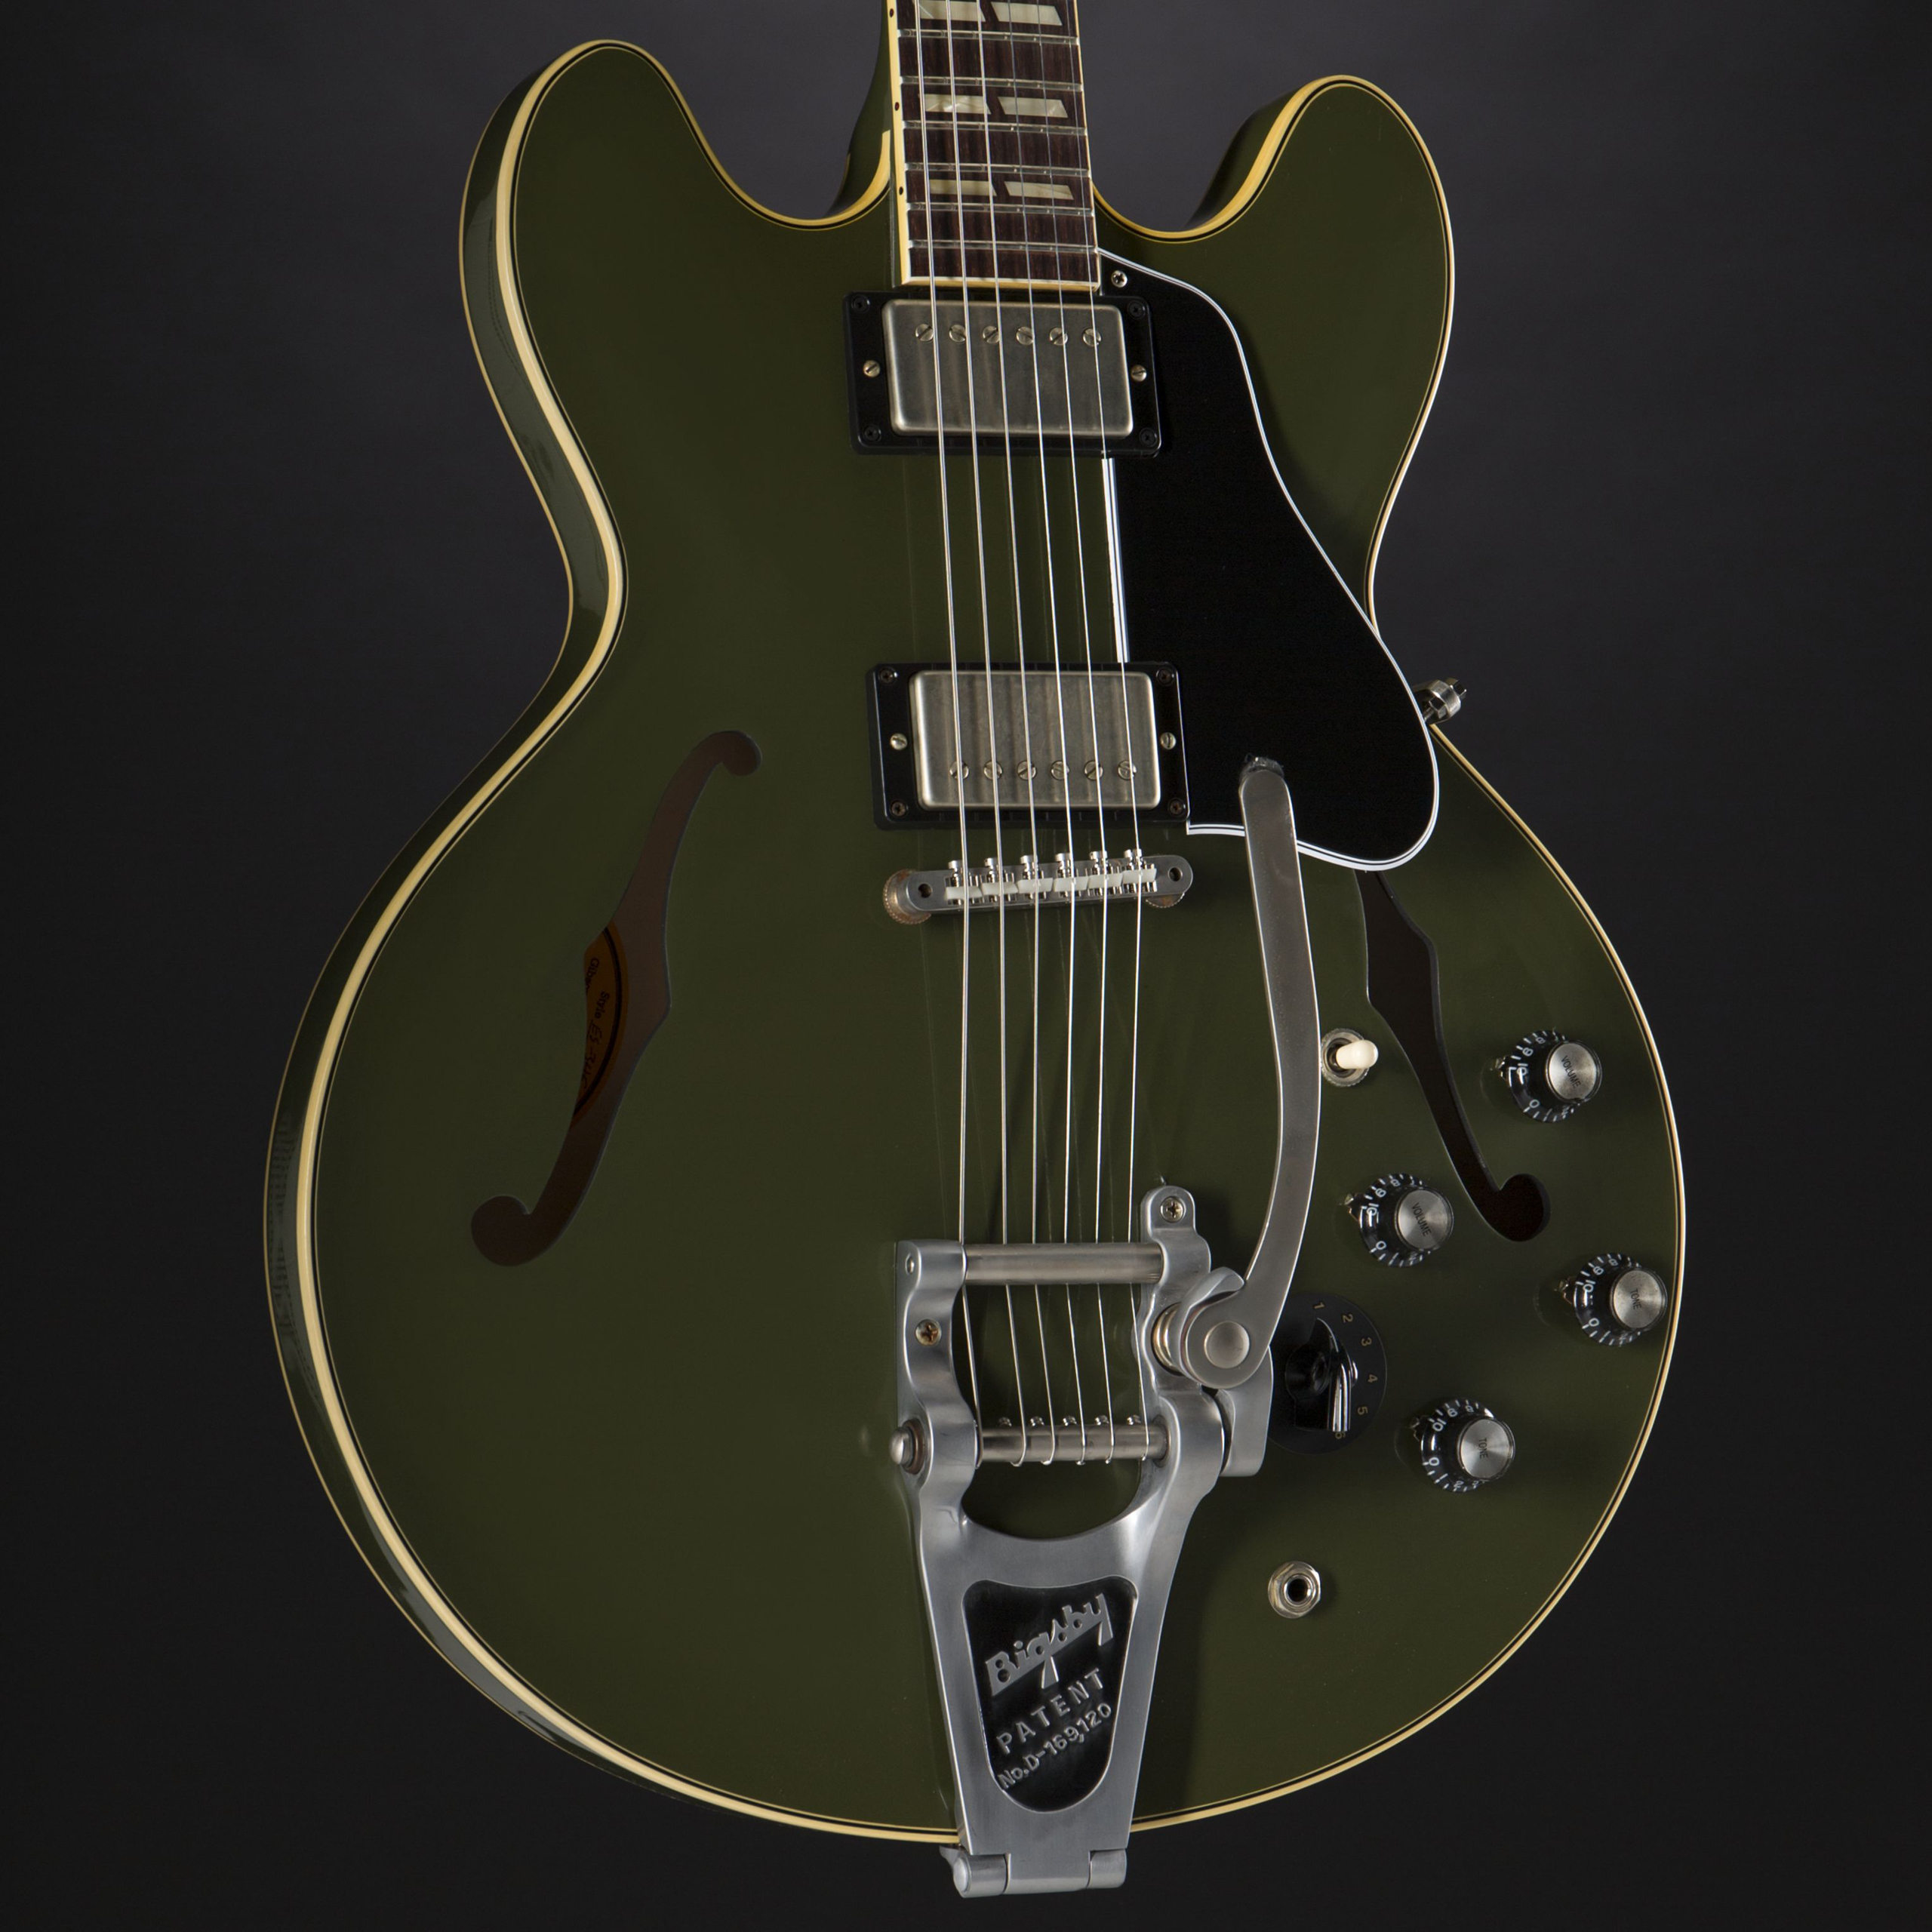 GIBSON 1964 ES-345 Bigsby Olive Drab Green 61579